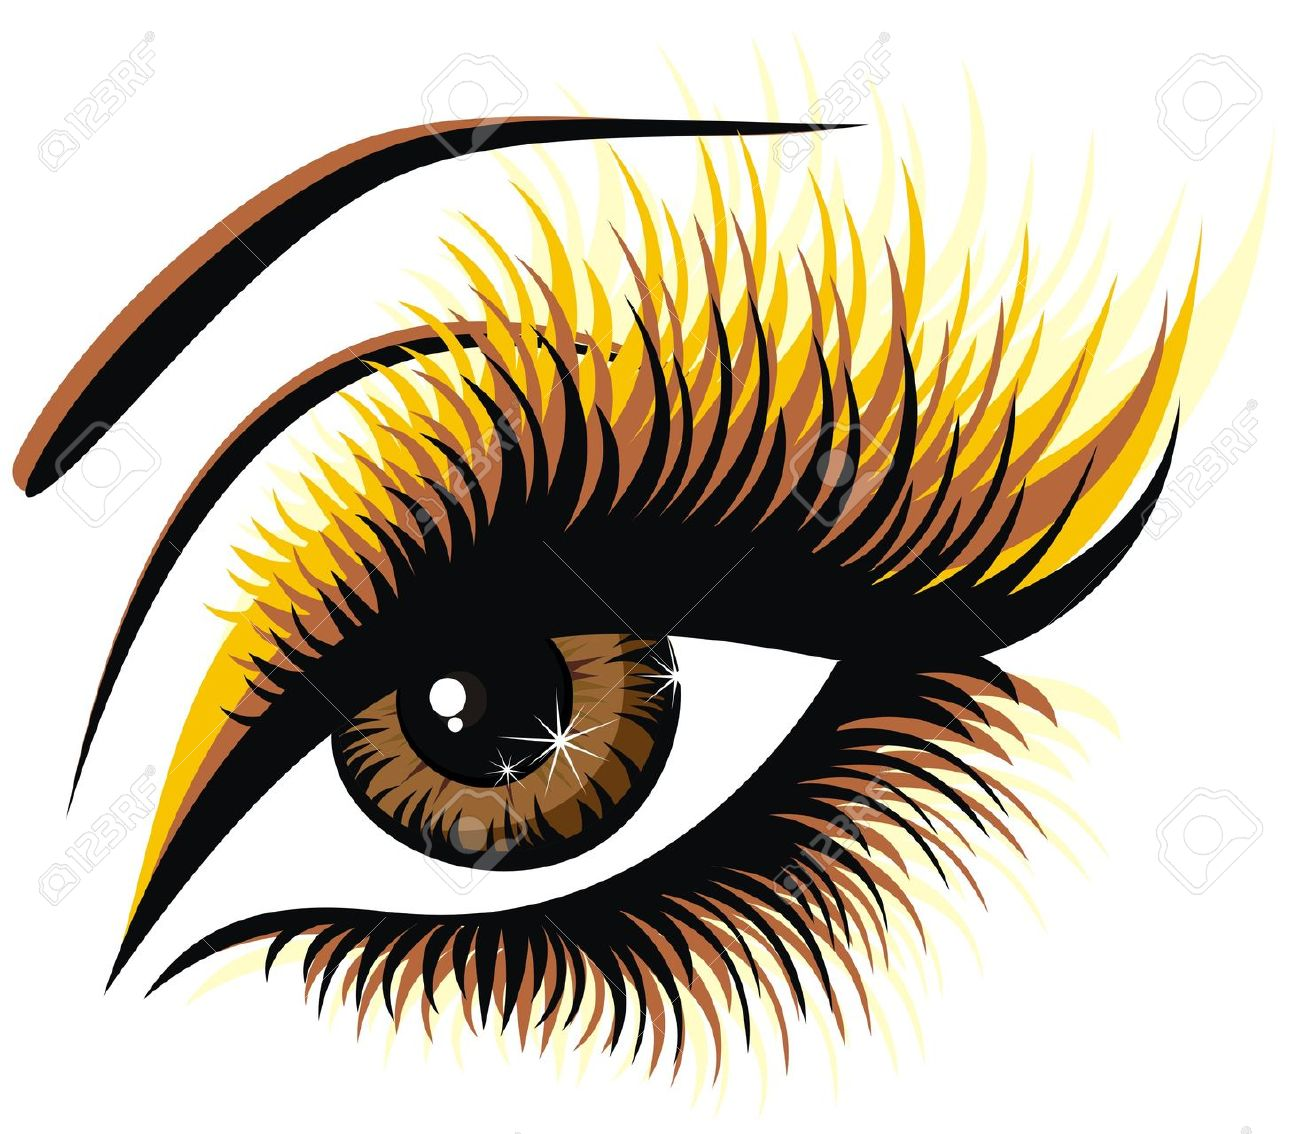 6,212 Pupil Eye Stock Vector Illustration And Royalty Free Pupil.